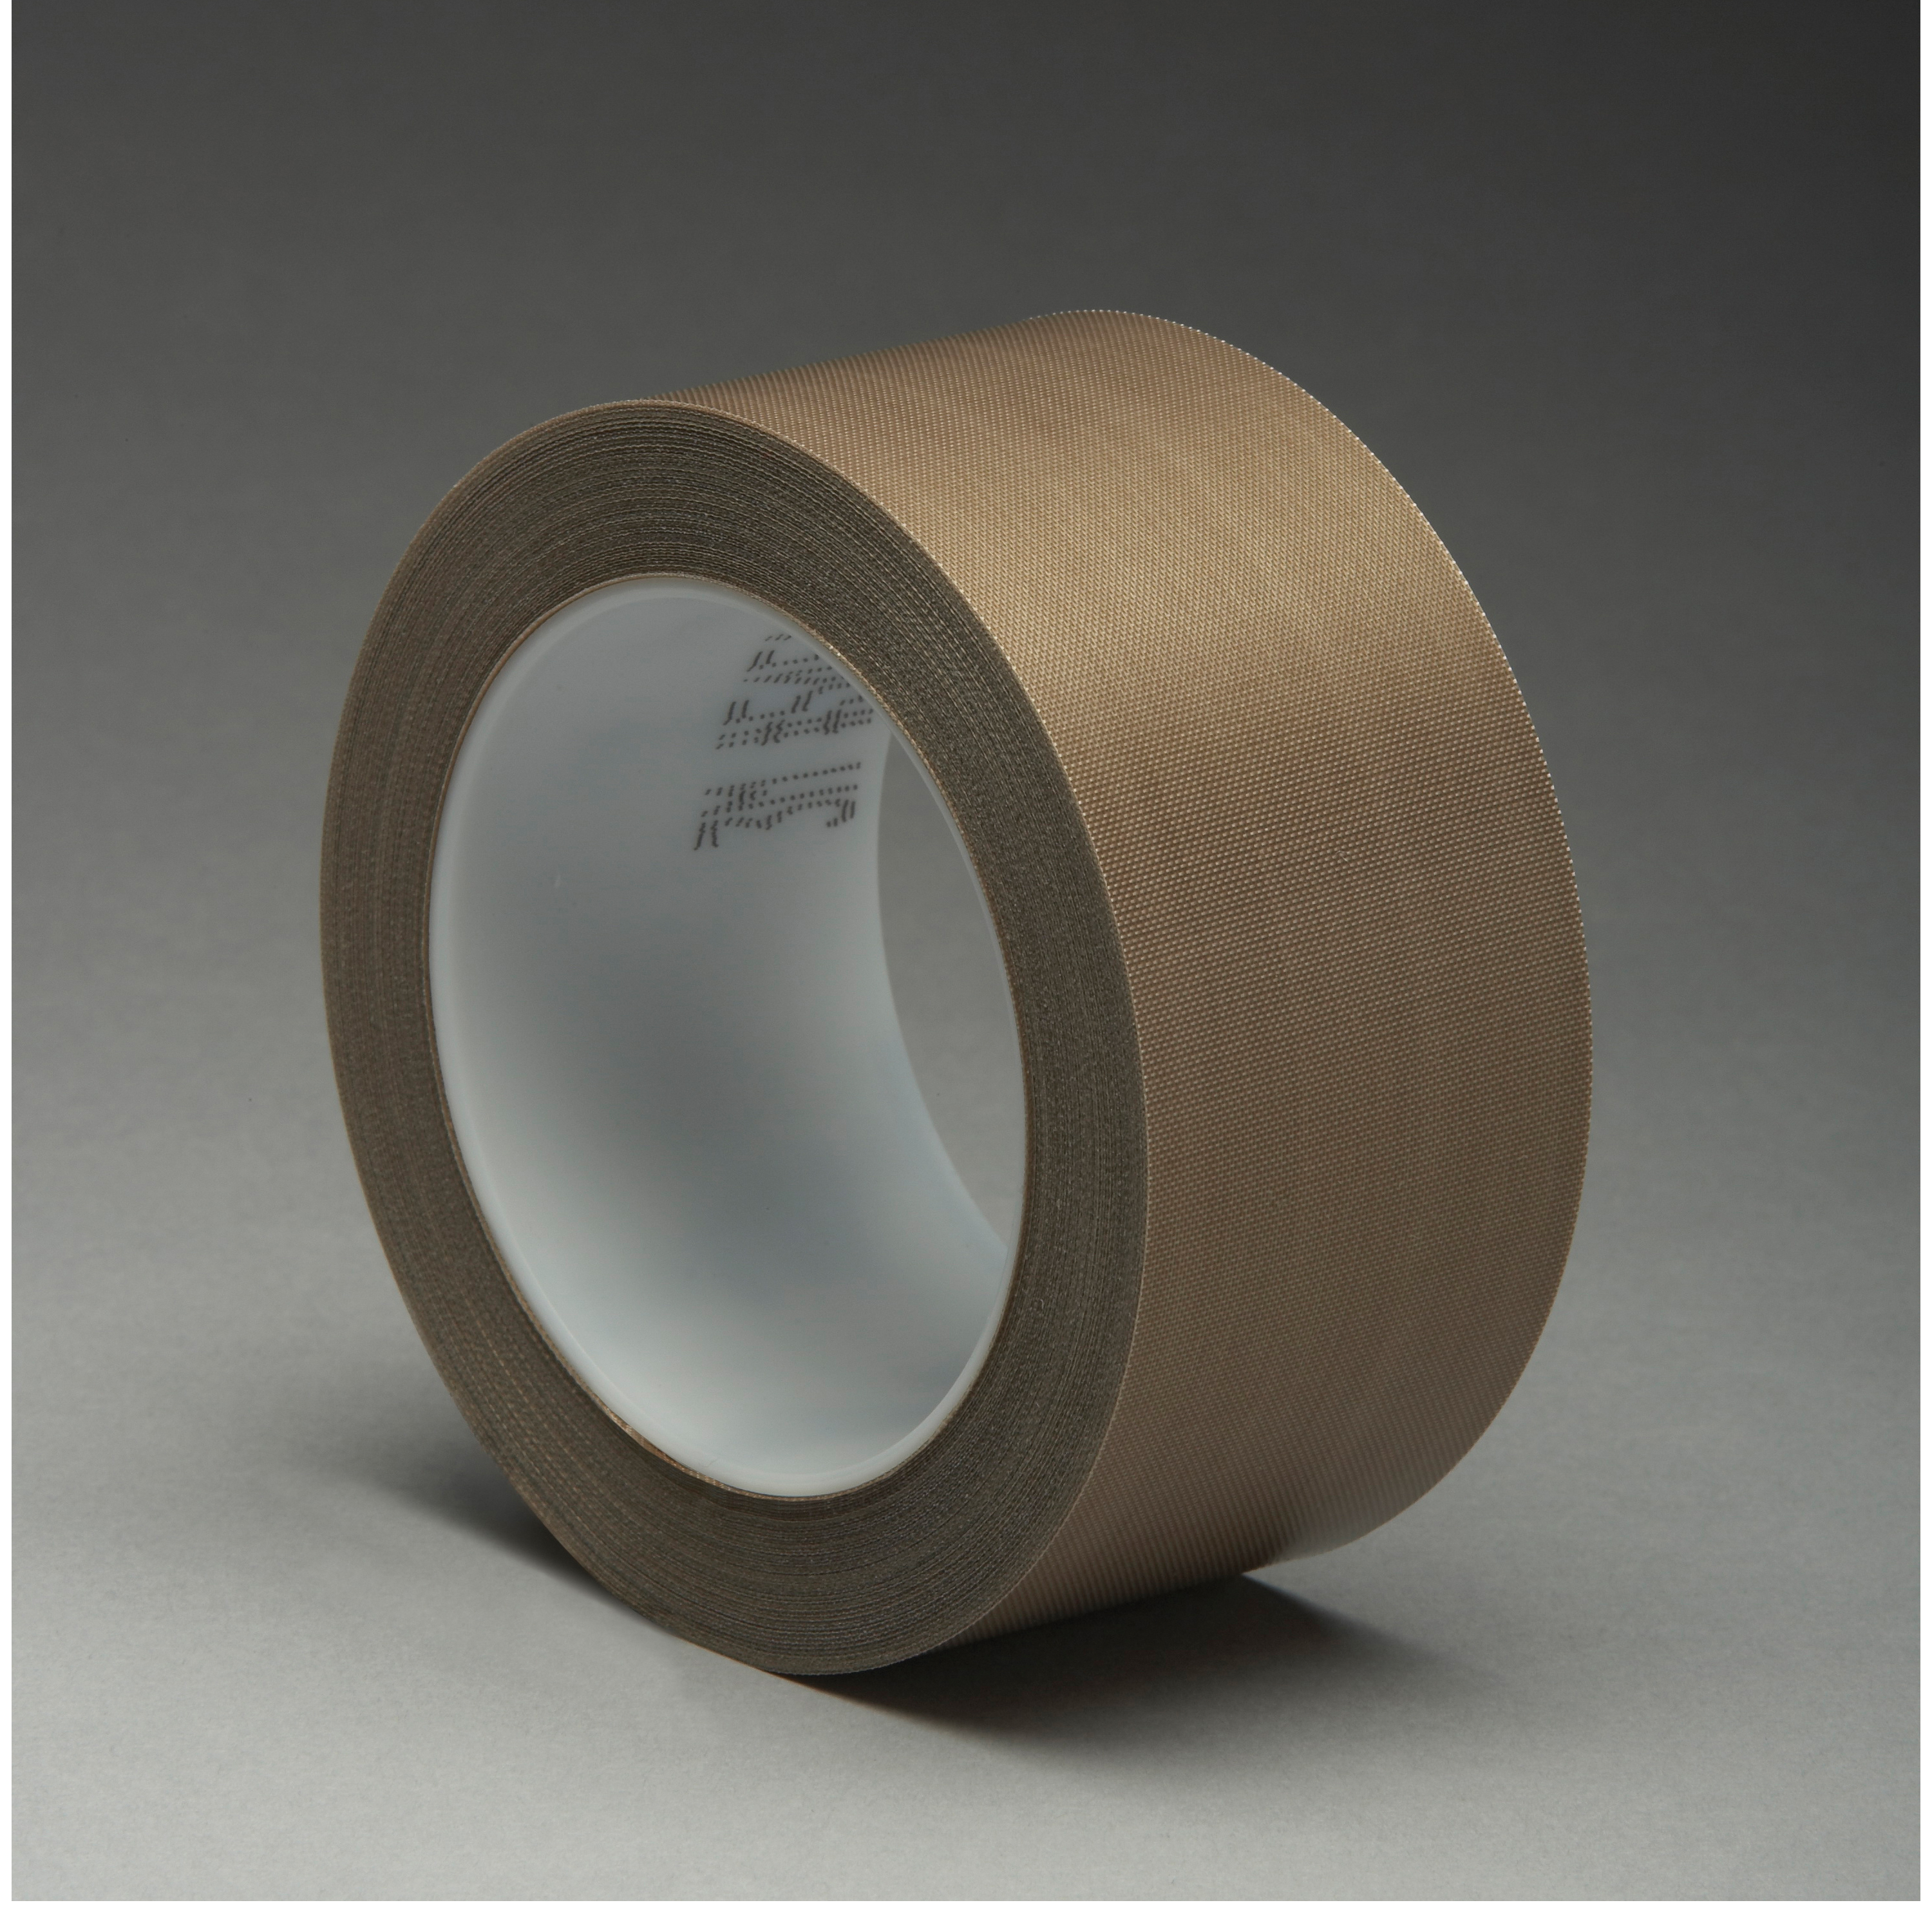 3M™ 021200-16150 Pressure Sensitive Glass Cloth Tape, 36 yd L x 1/2 in W, 5.6 mil THK, Silicon Adhesive, Woven Glass Cloth Impregnated with PTFE Backing, Brown